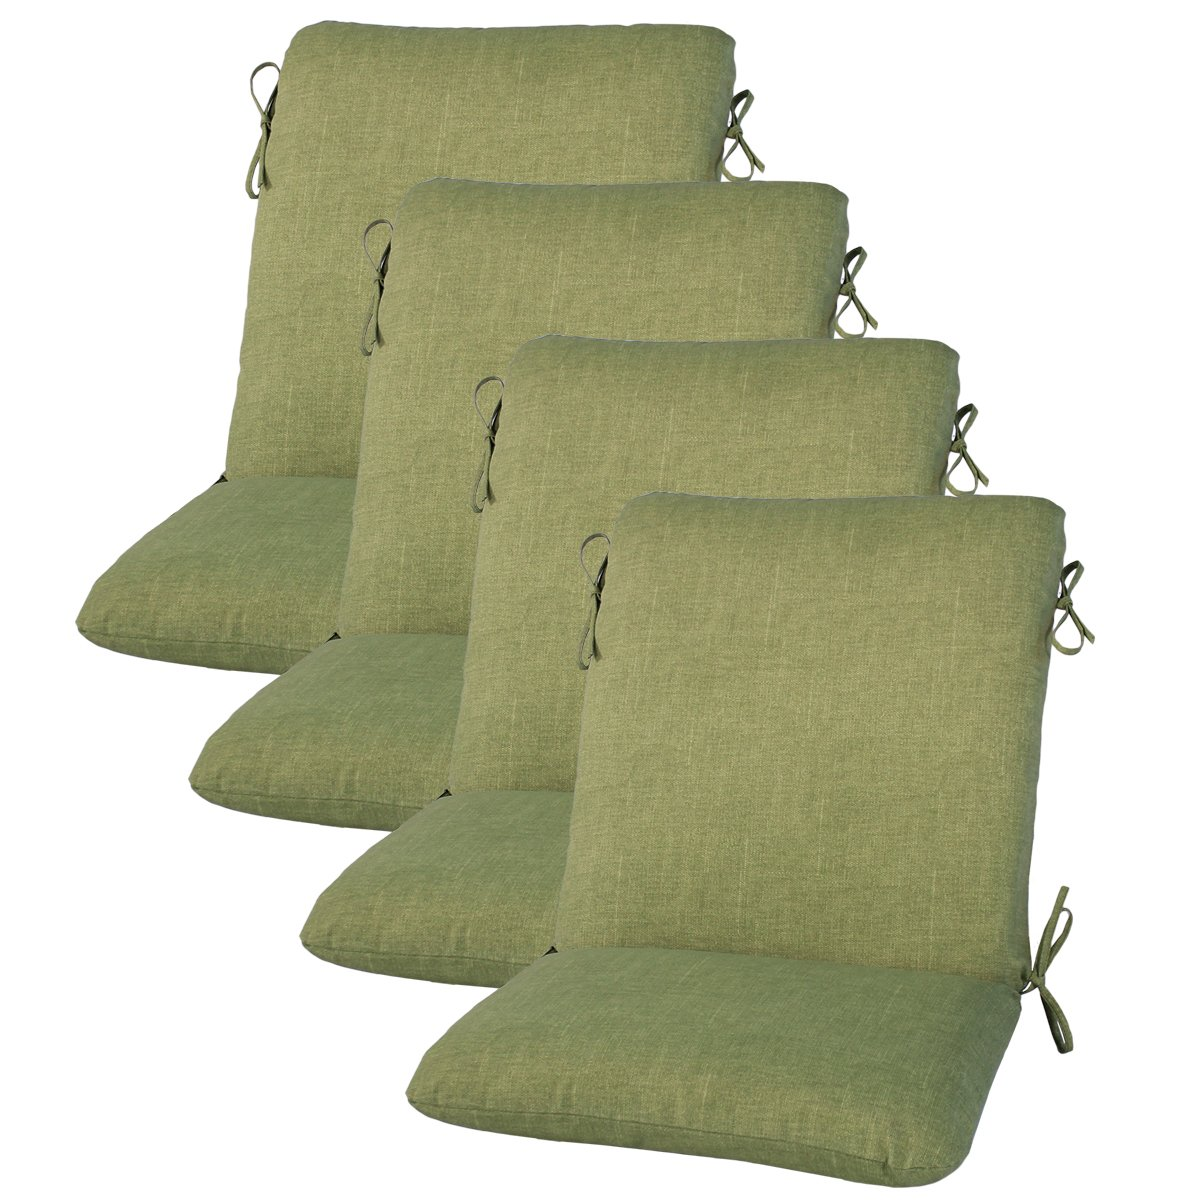 Set of 4 Outdoor Dining Chair Cushion 20'' x 38'' x 3'' in Polyester Fabric Leaf by Comfort Classics Inc.